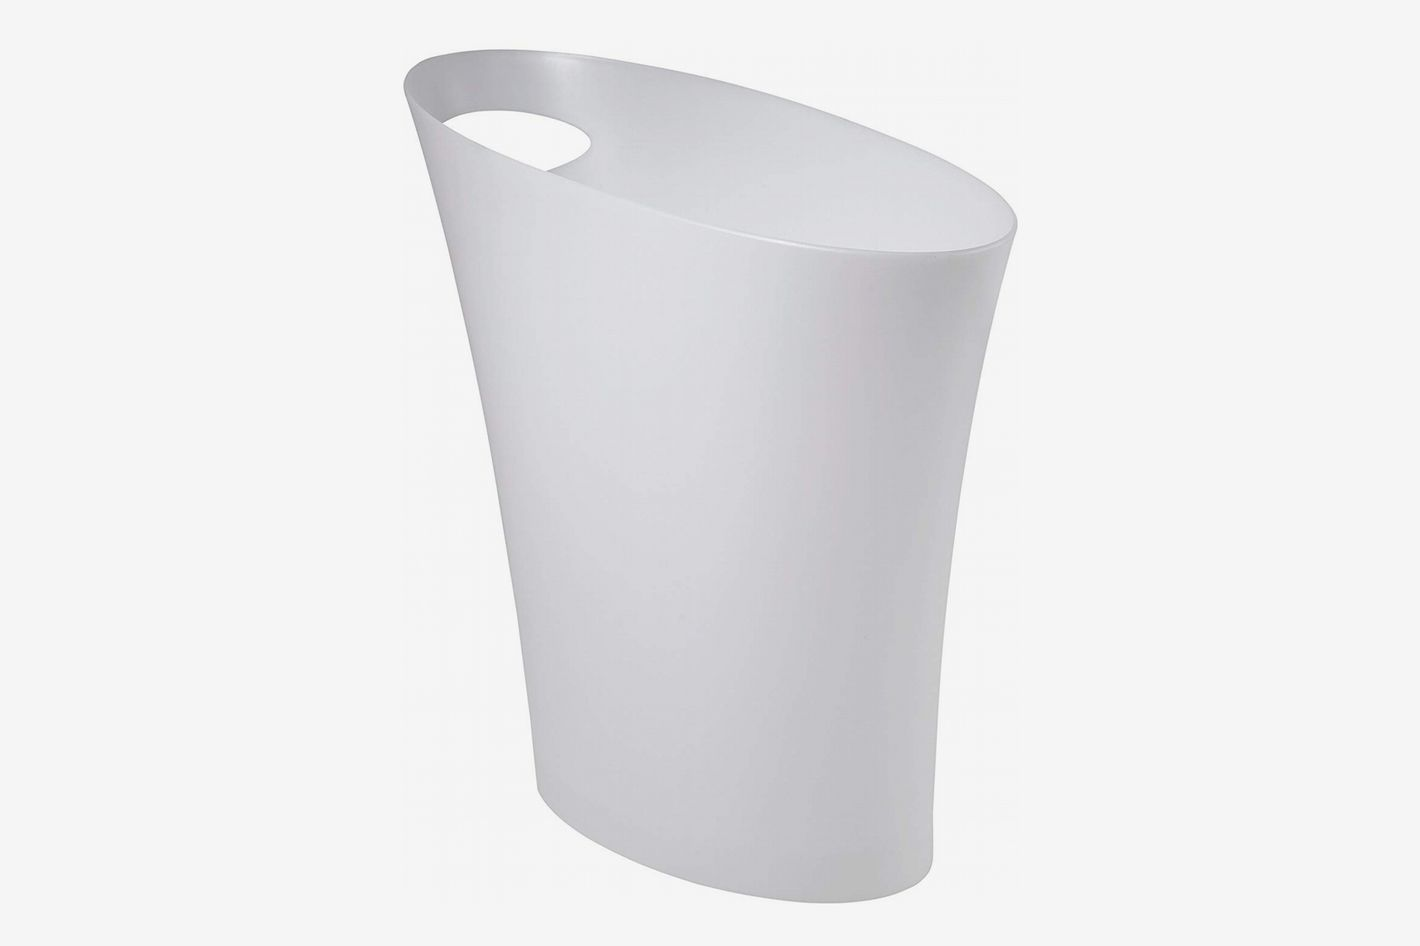 Umbra Skinny Sleek & Stylish Small Garbage Can